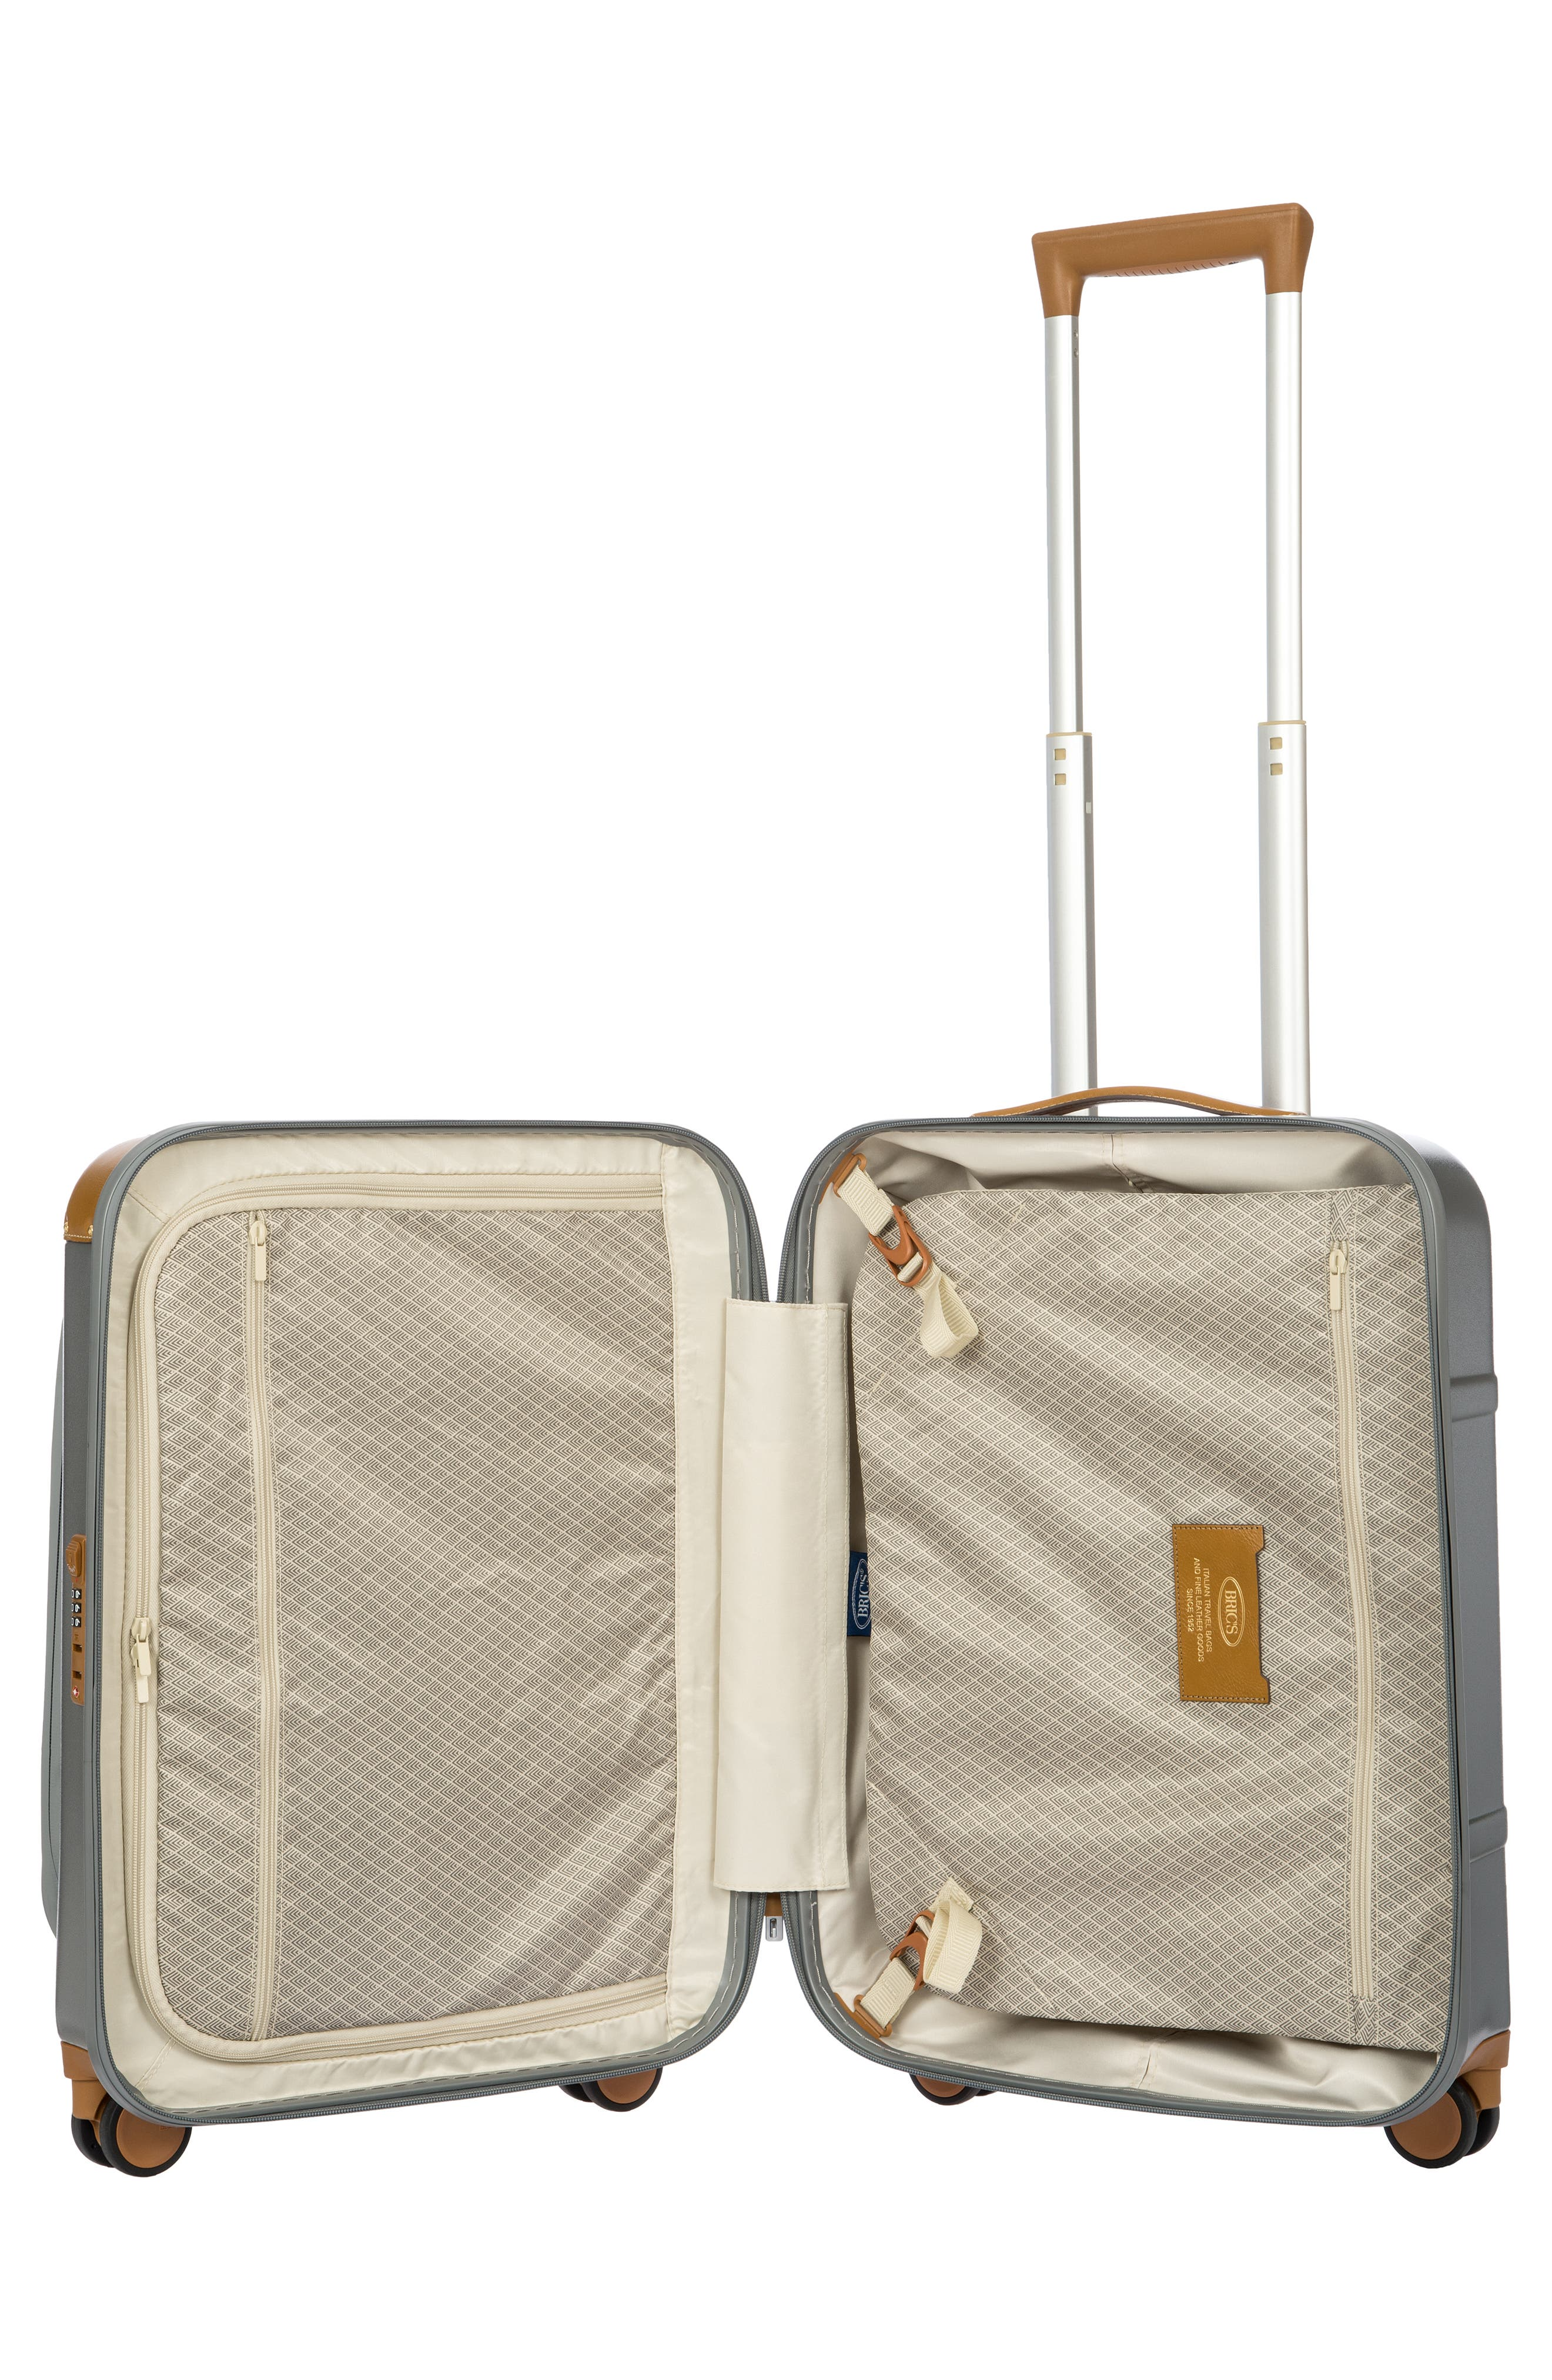 Bellagio 2.0 21-Inch Rolling Carry-On,                             Alternate thumbnail 9, color,                             SILVER